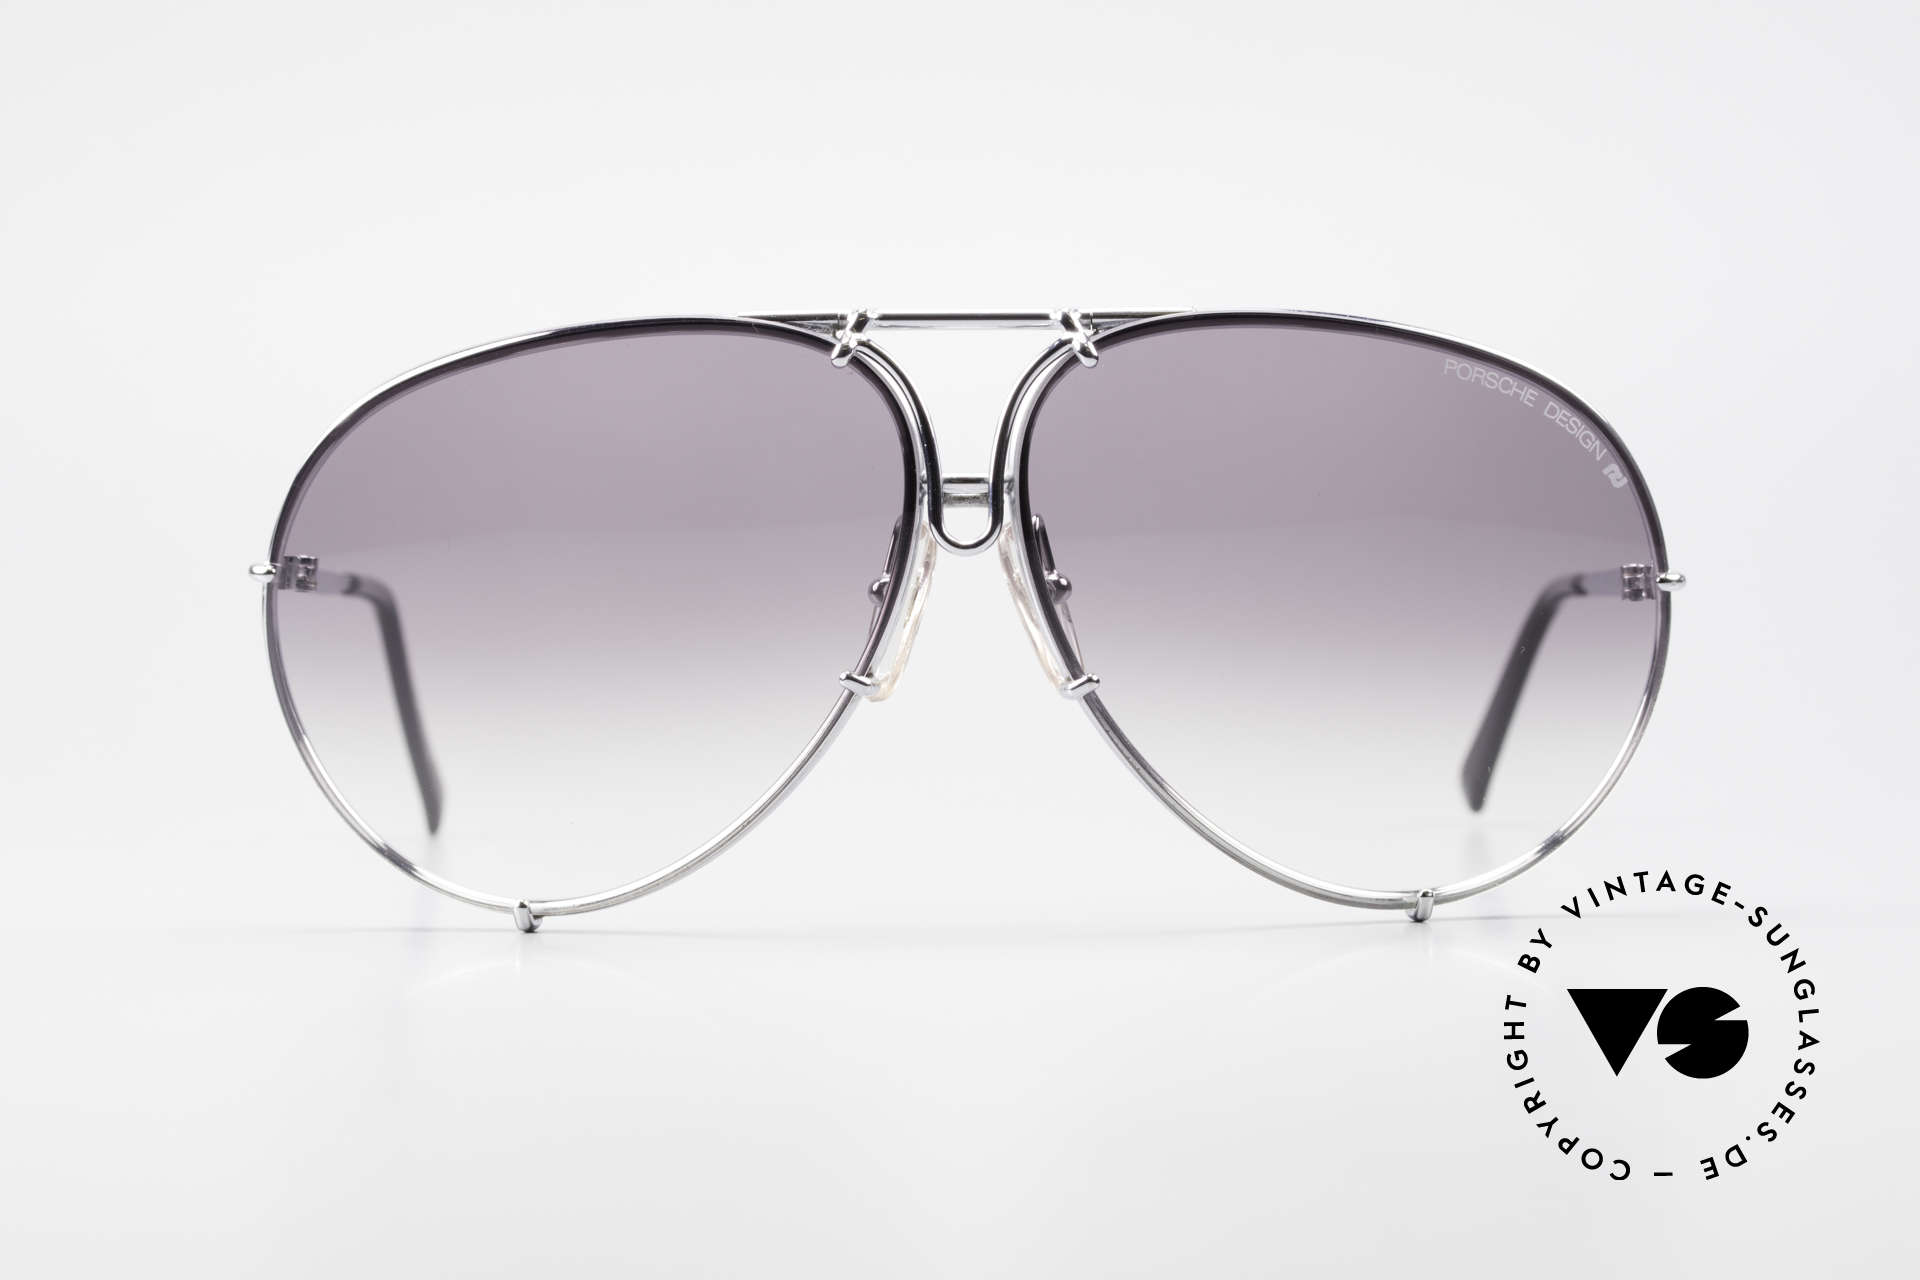 Porsche 5621 80's XL Aviator Sunglasses, one of the most wanted vintage models, worldwide, Made for Men and Women